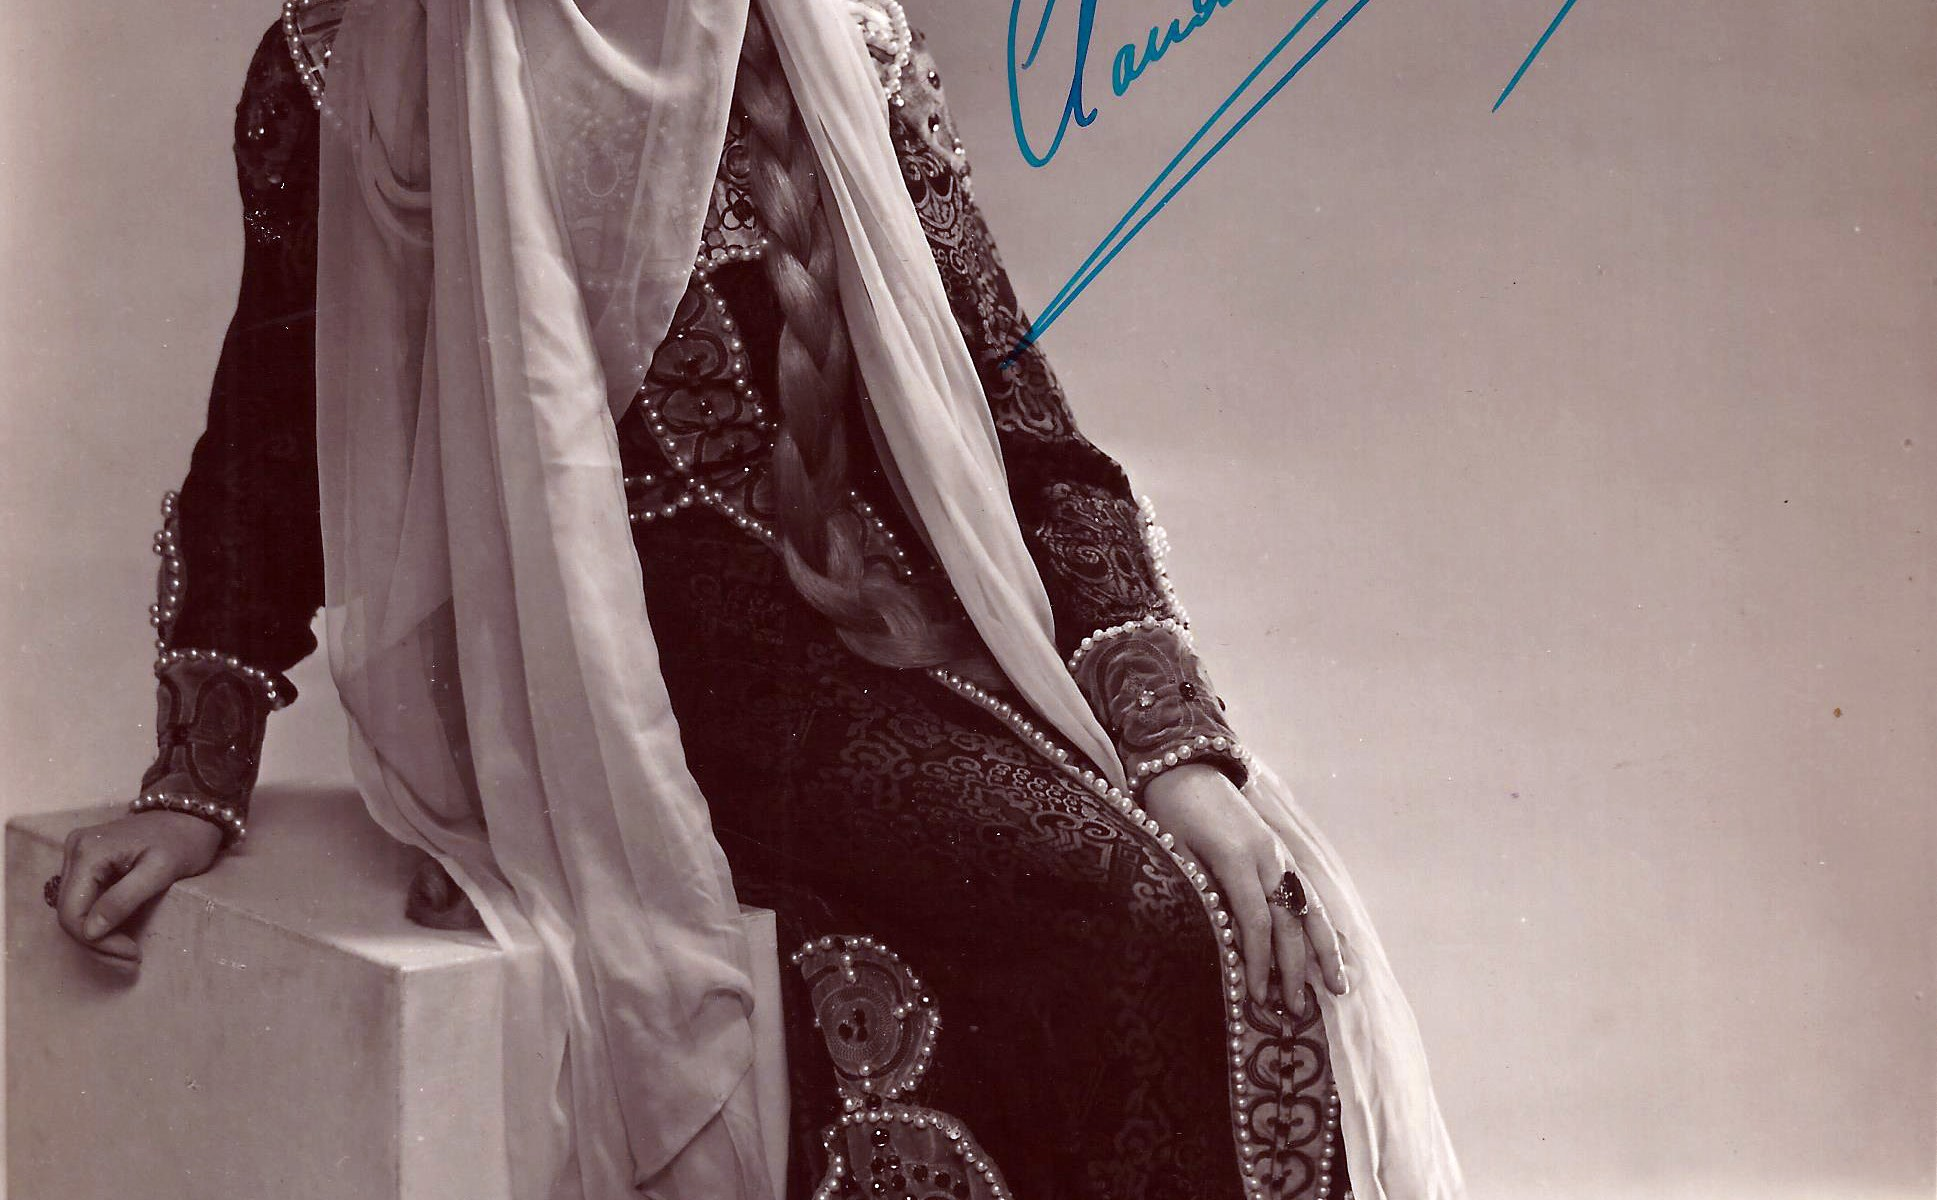 Boons, Claudine as Jaroslavna in Le Prince Igor